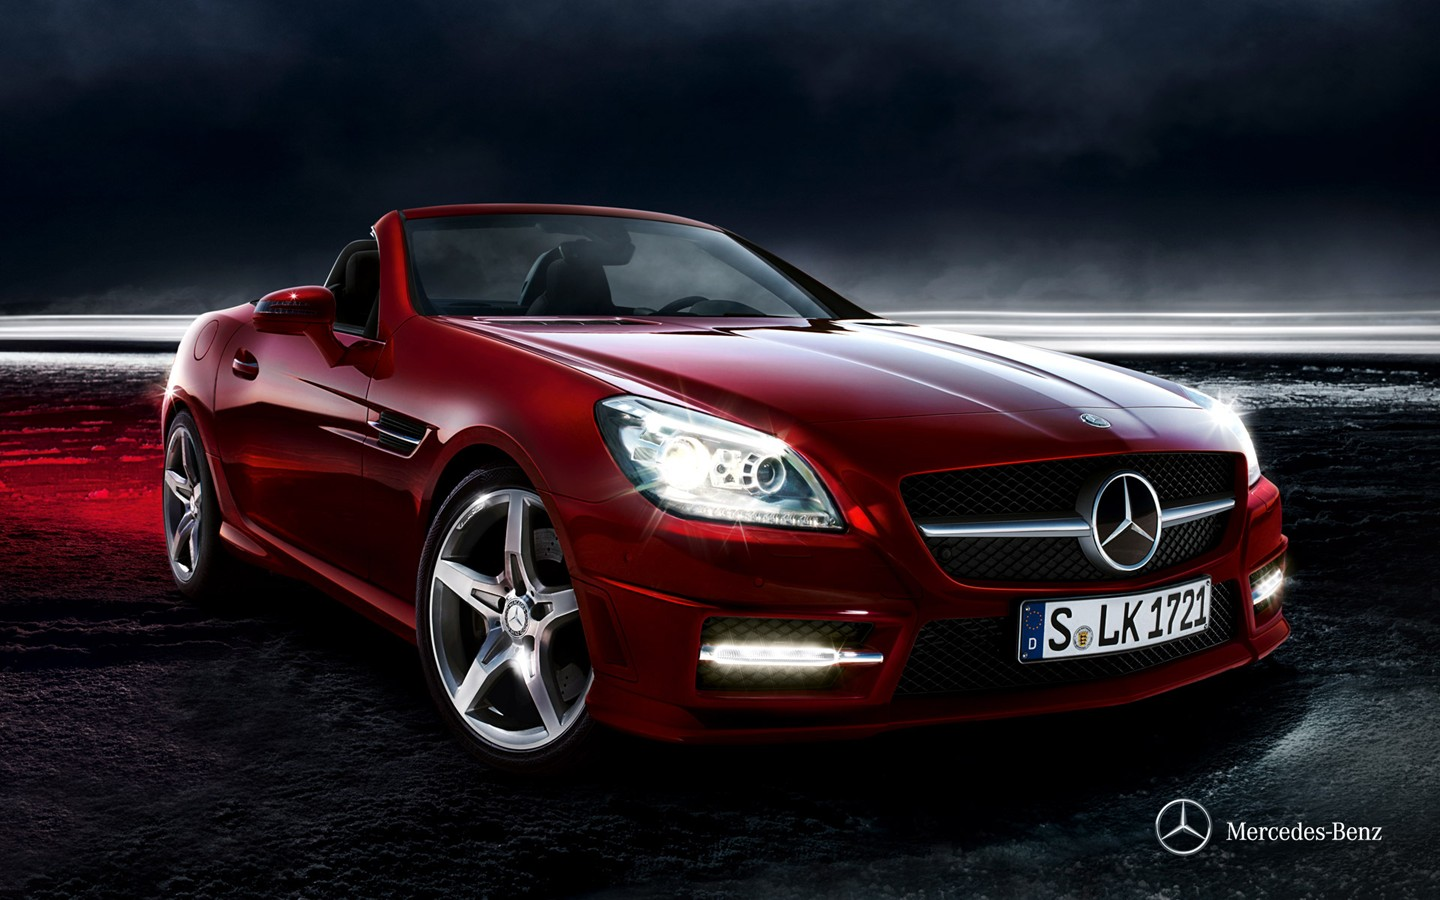 Mercedes-Benz SLK roadster 32026